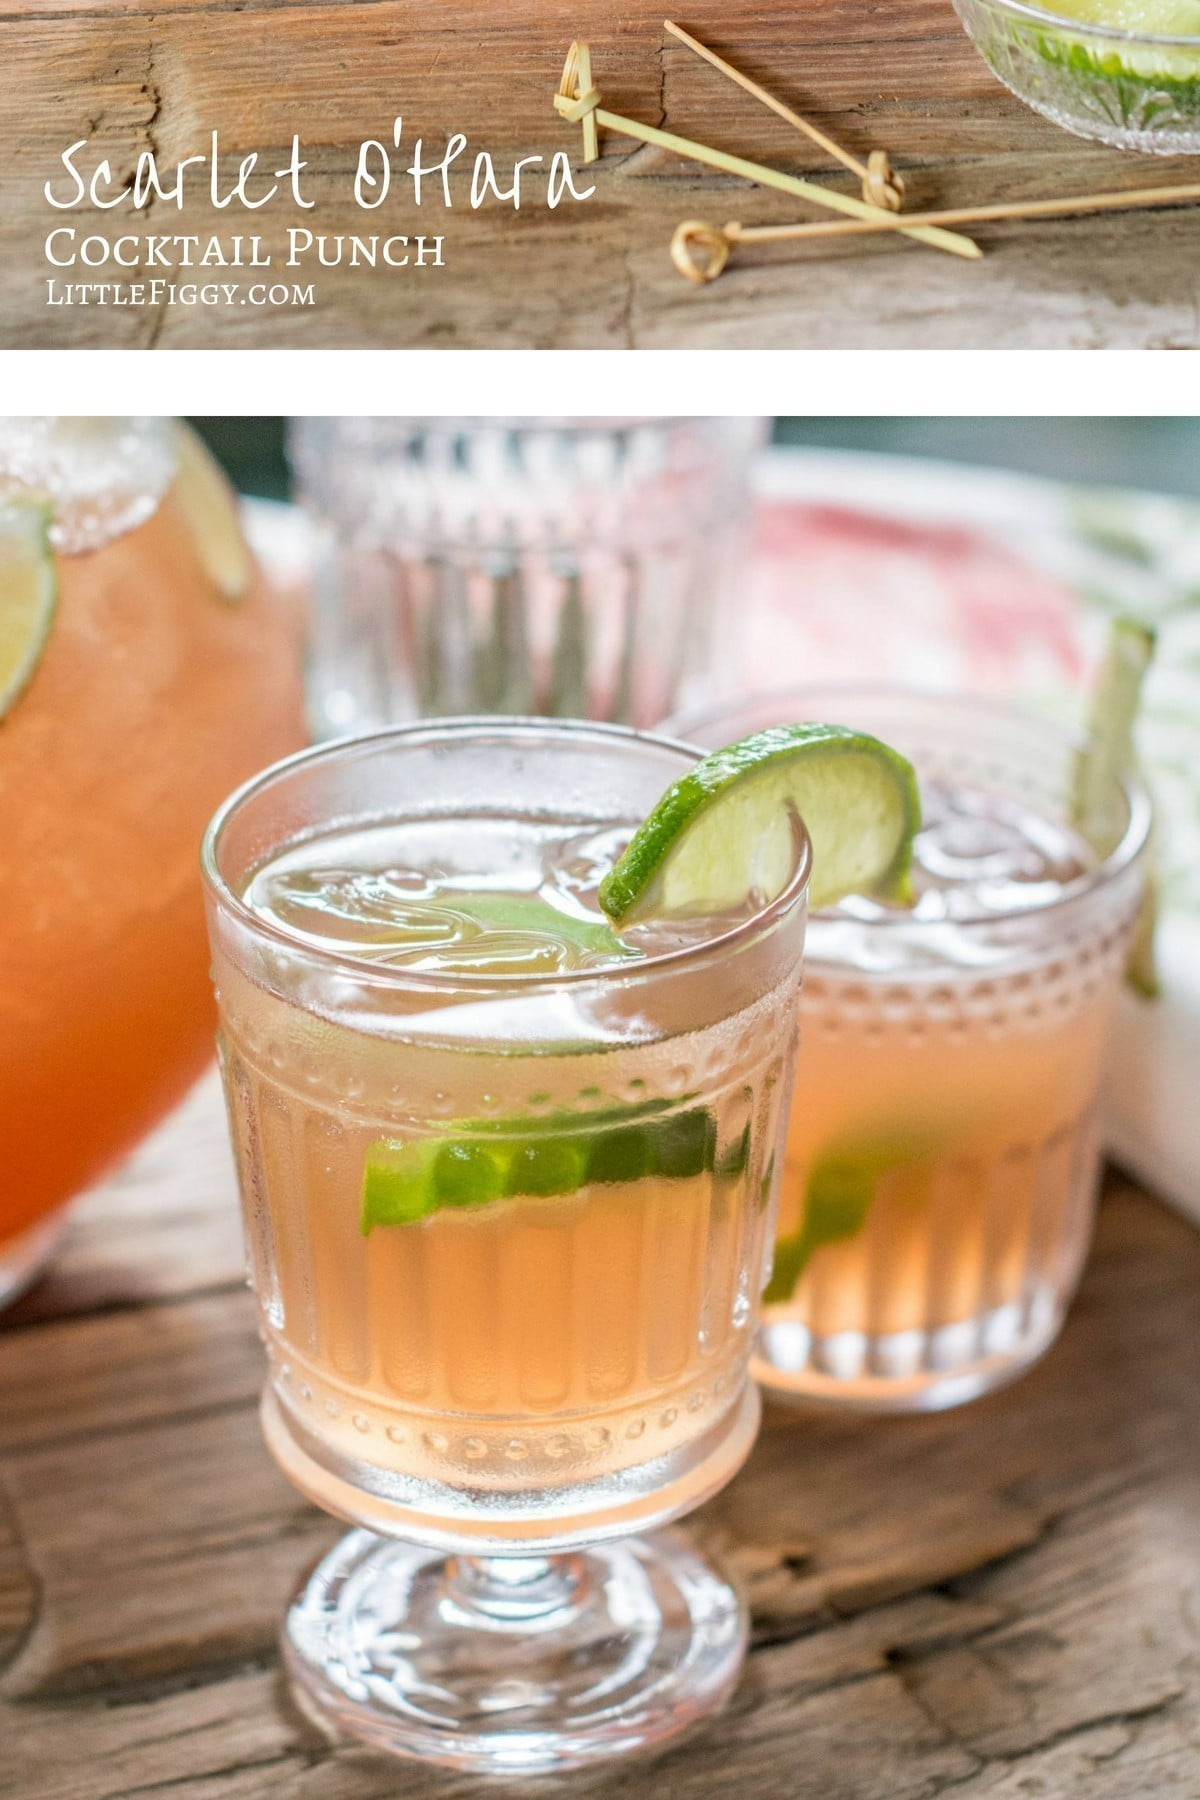 Enjoy sipping on this Scarlet O'Hara Cocktail, perfect for your next get together! @WorldMarket #WorldMarketTribe #LittleFiggyFood #ad #cocktails #recipes